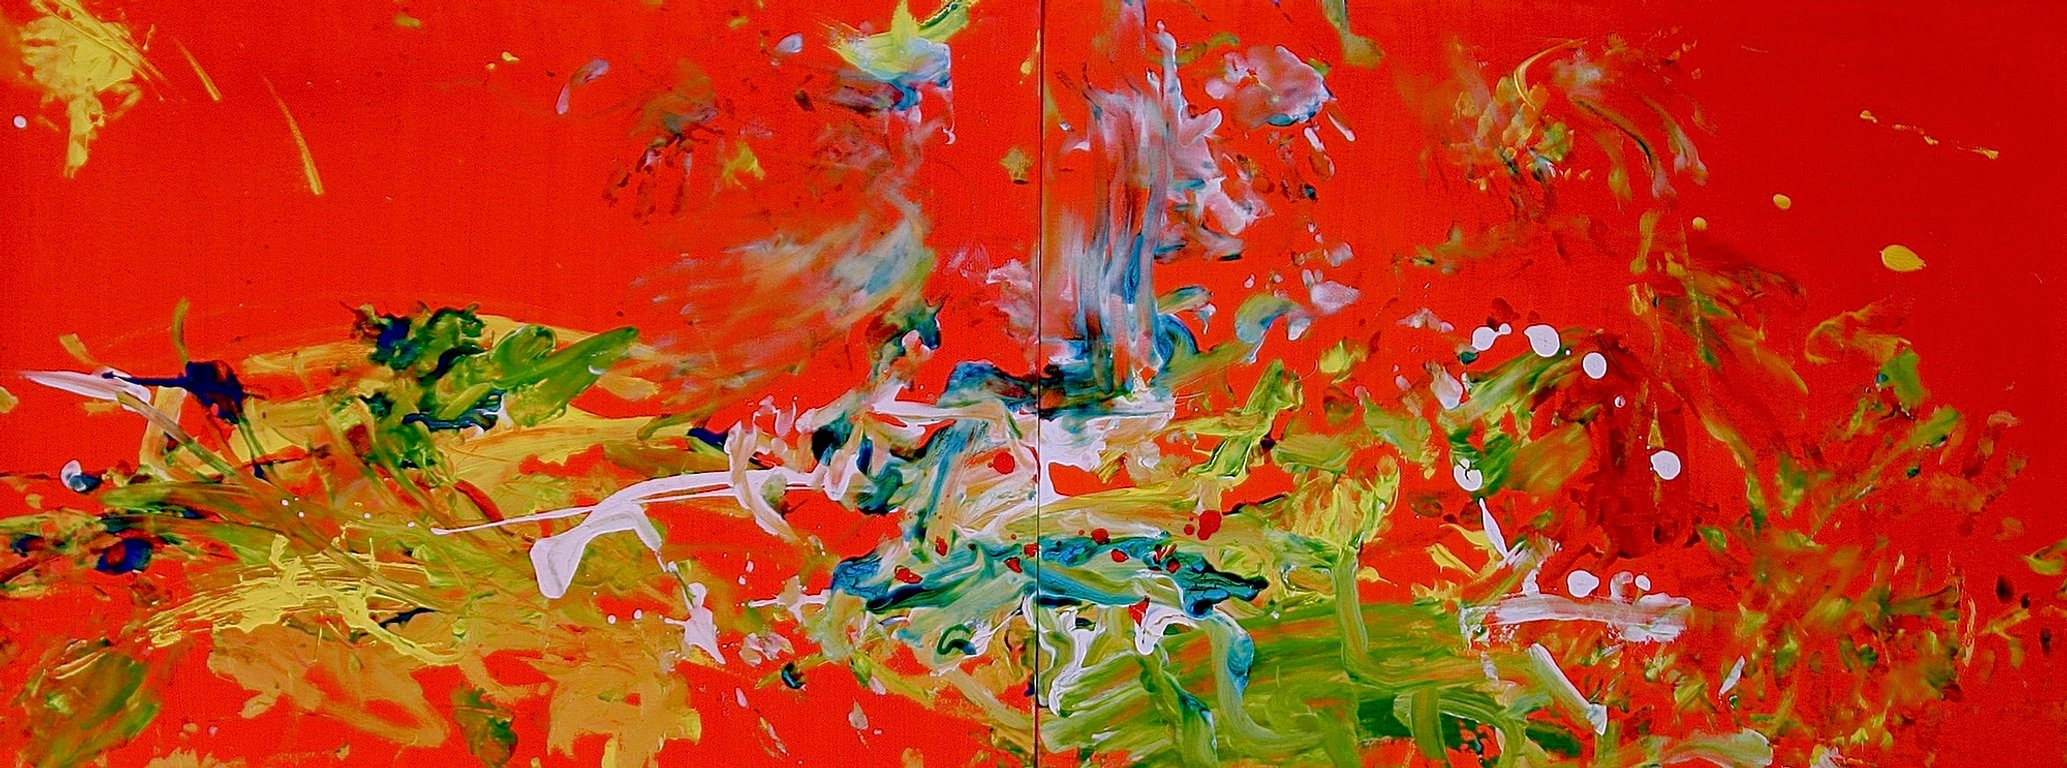 Aelita Andre Art Abstract Expressionist Painter Prodigy 2008